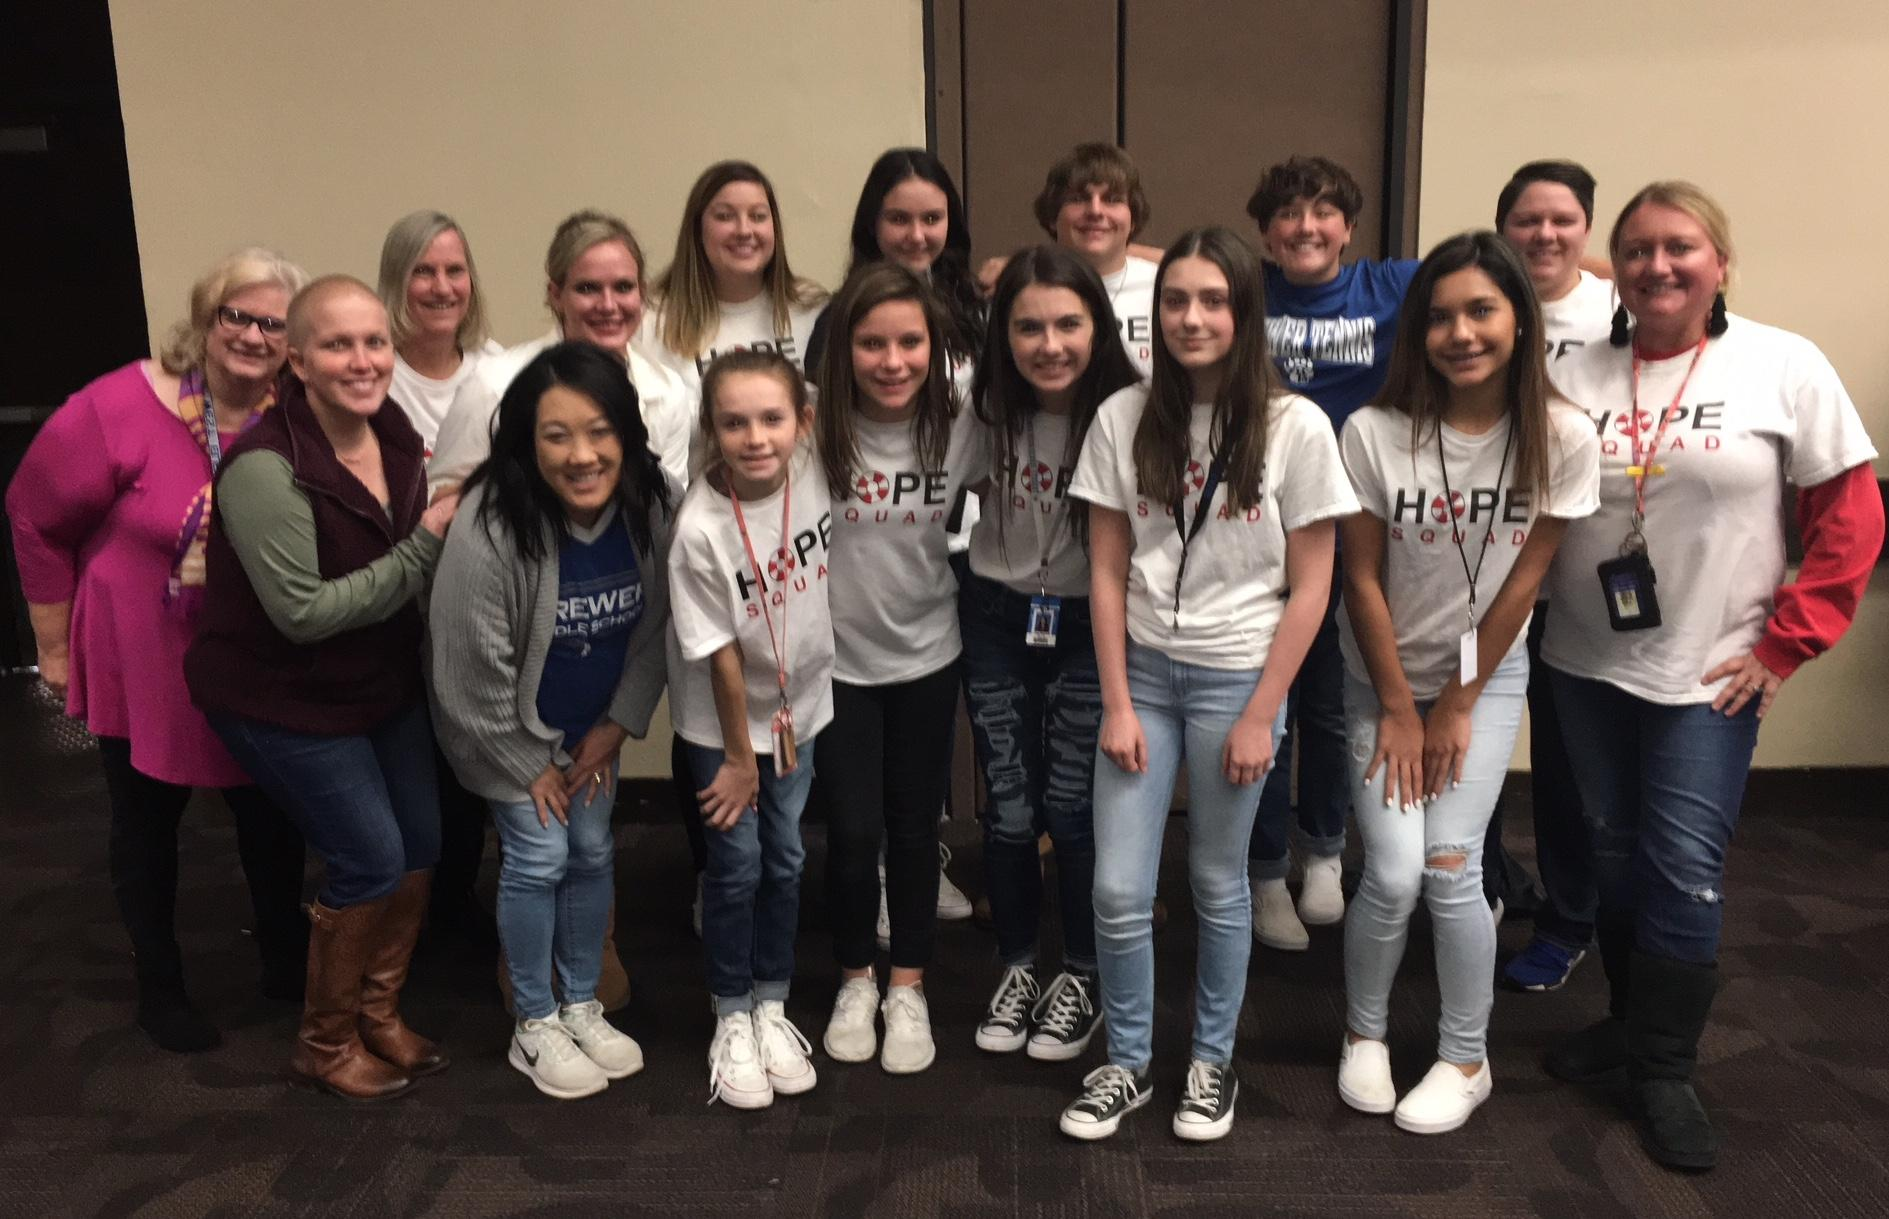 WSISD Students Represent HOPE Squads Throughout State at Luncheon to Raise Funds for Suicide Prevention